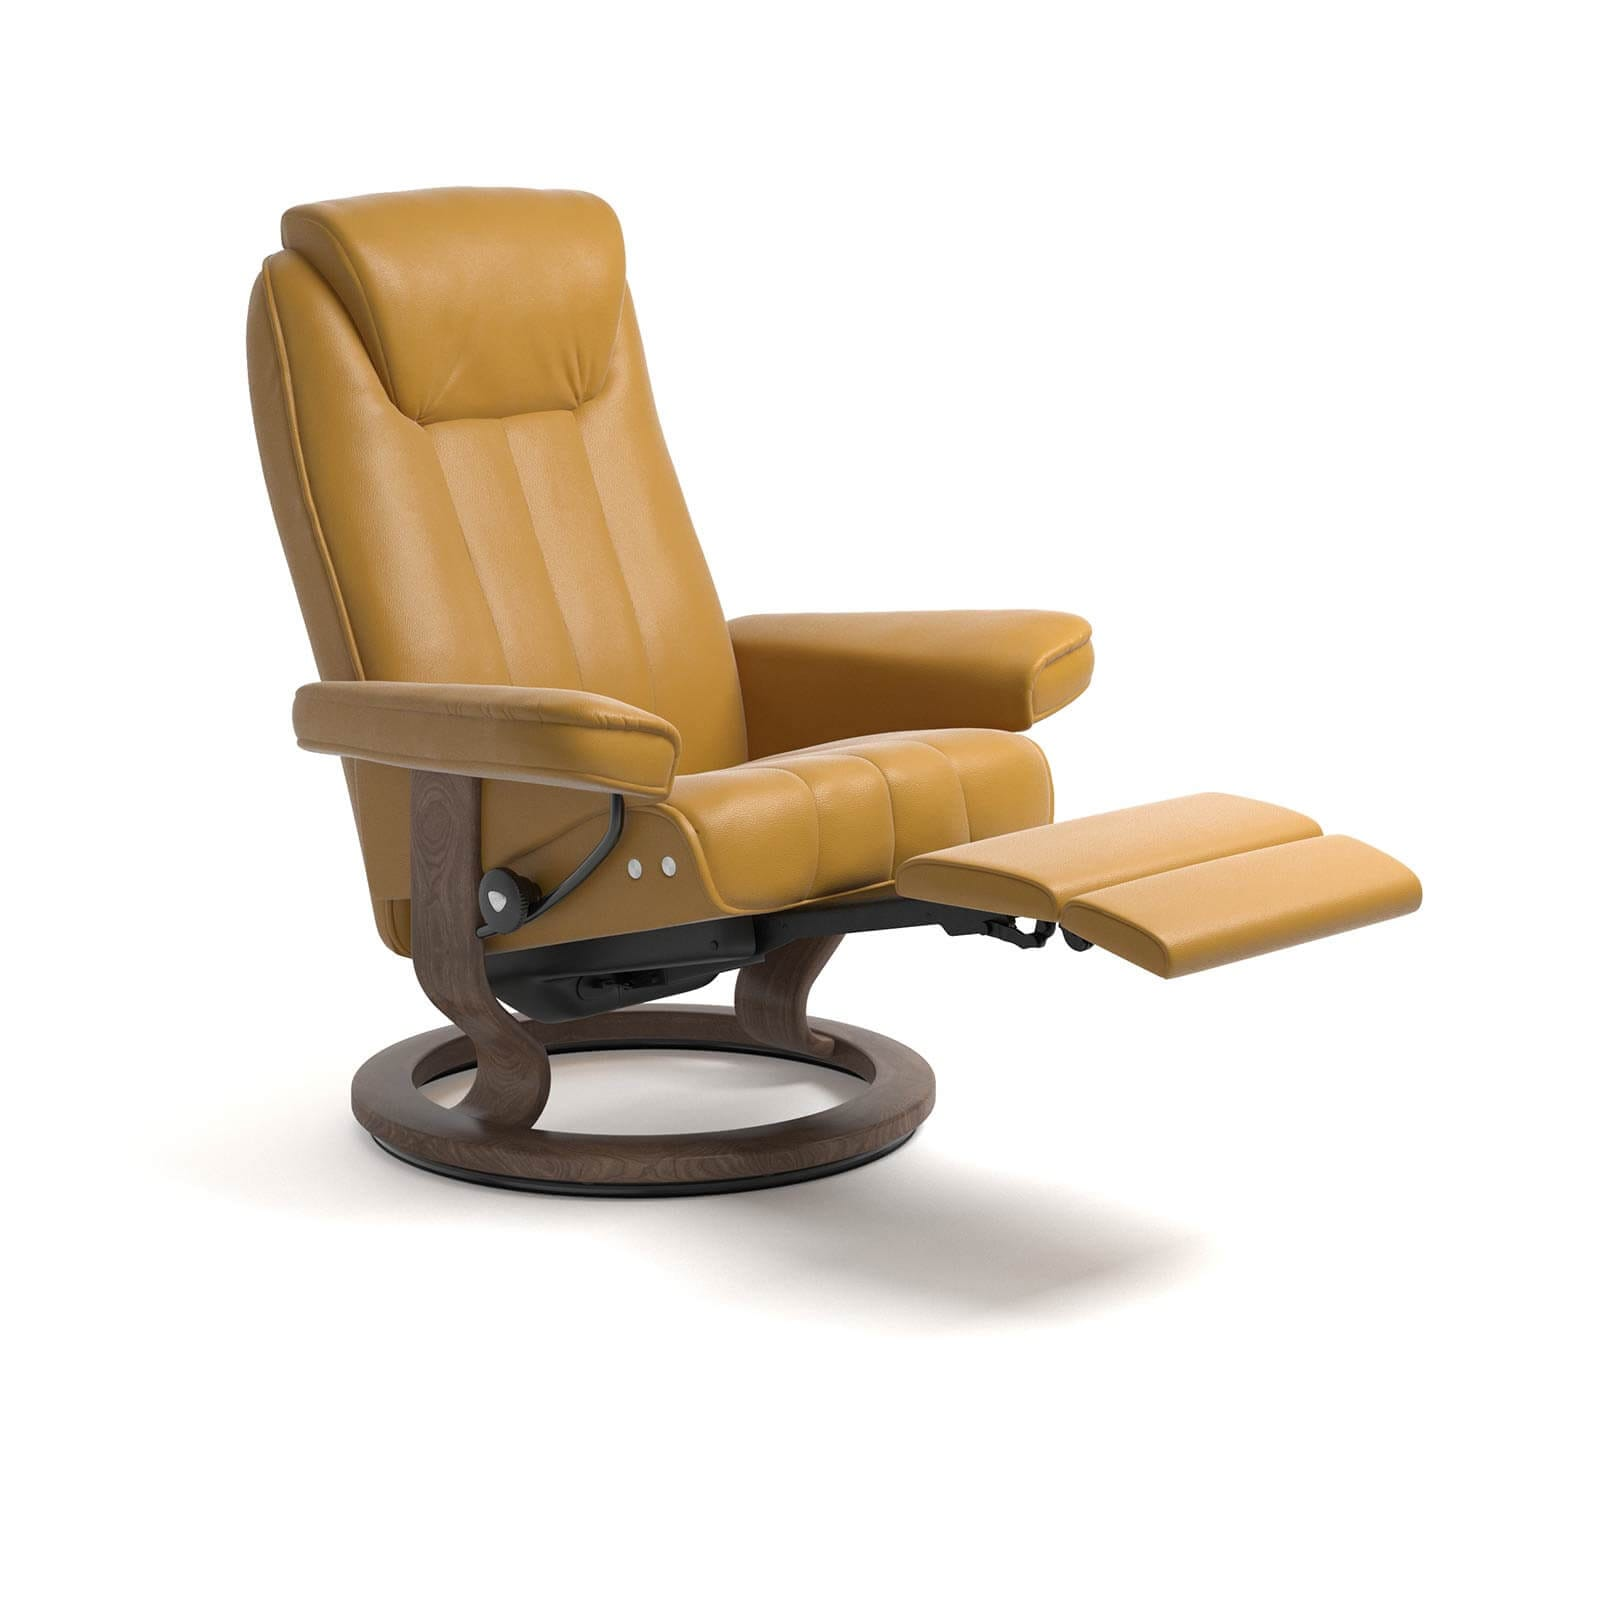 Stressless Sessel Bliss Stressless Bliss Legcomfort Mustard Stressless Online Shop